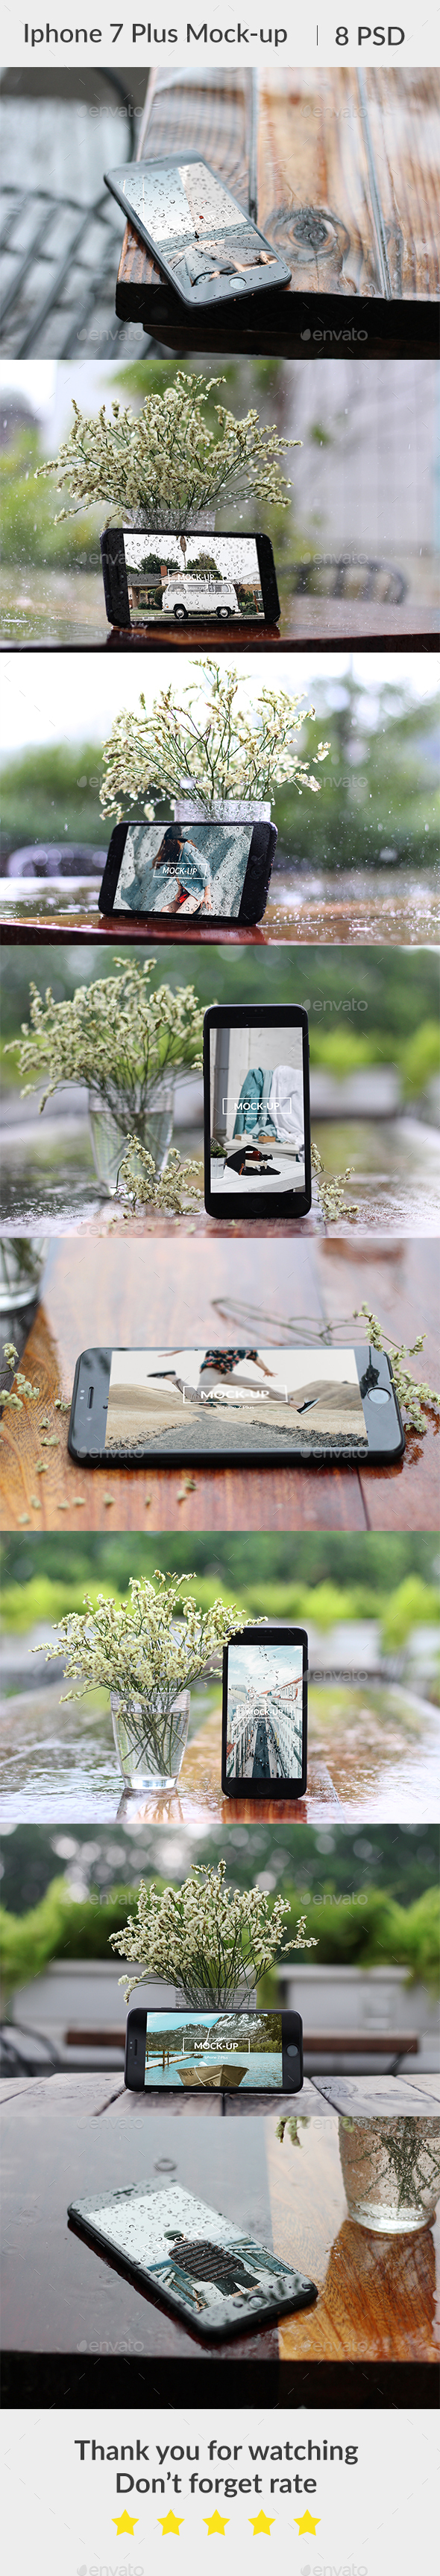 Phone 7 Plus Waterdrop Mockup - Mobile Displays